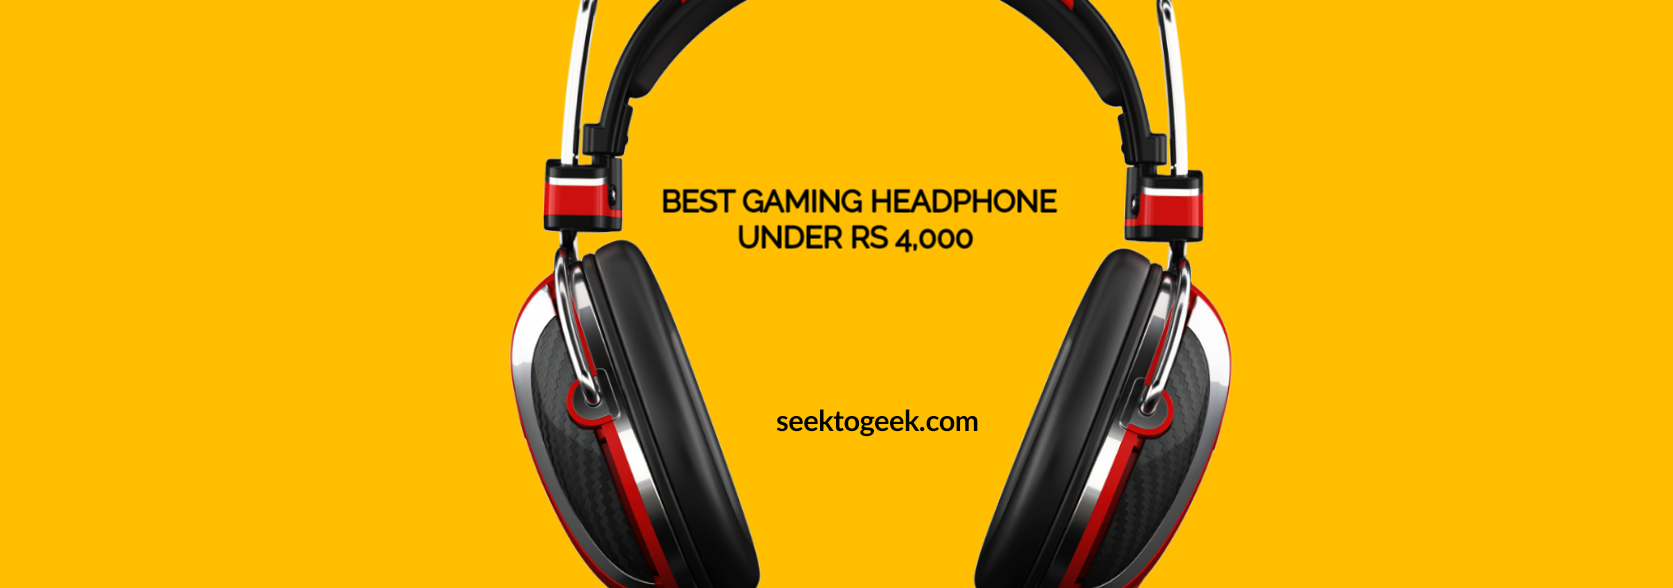 Best gaming Headphones Under Rs 4000